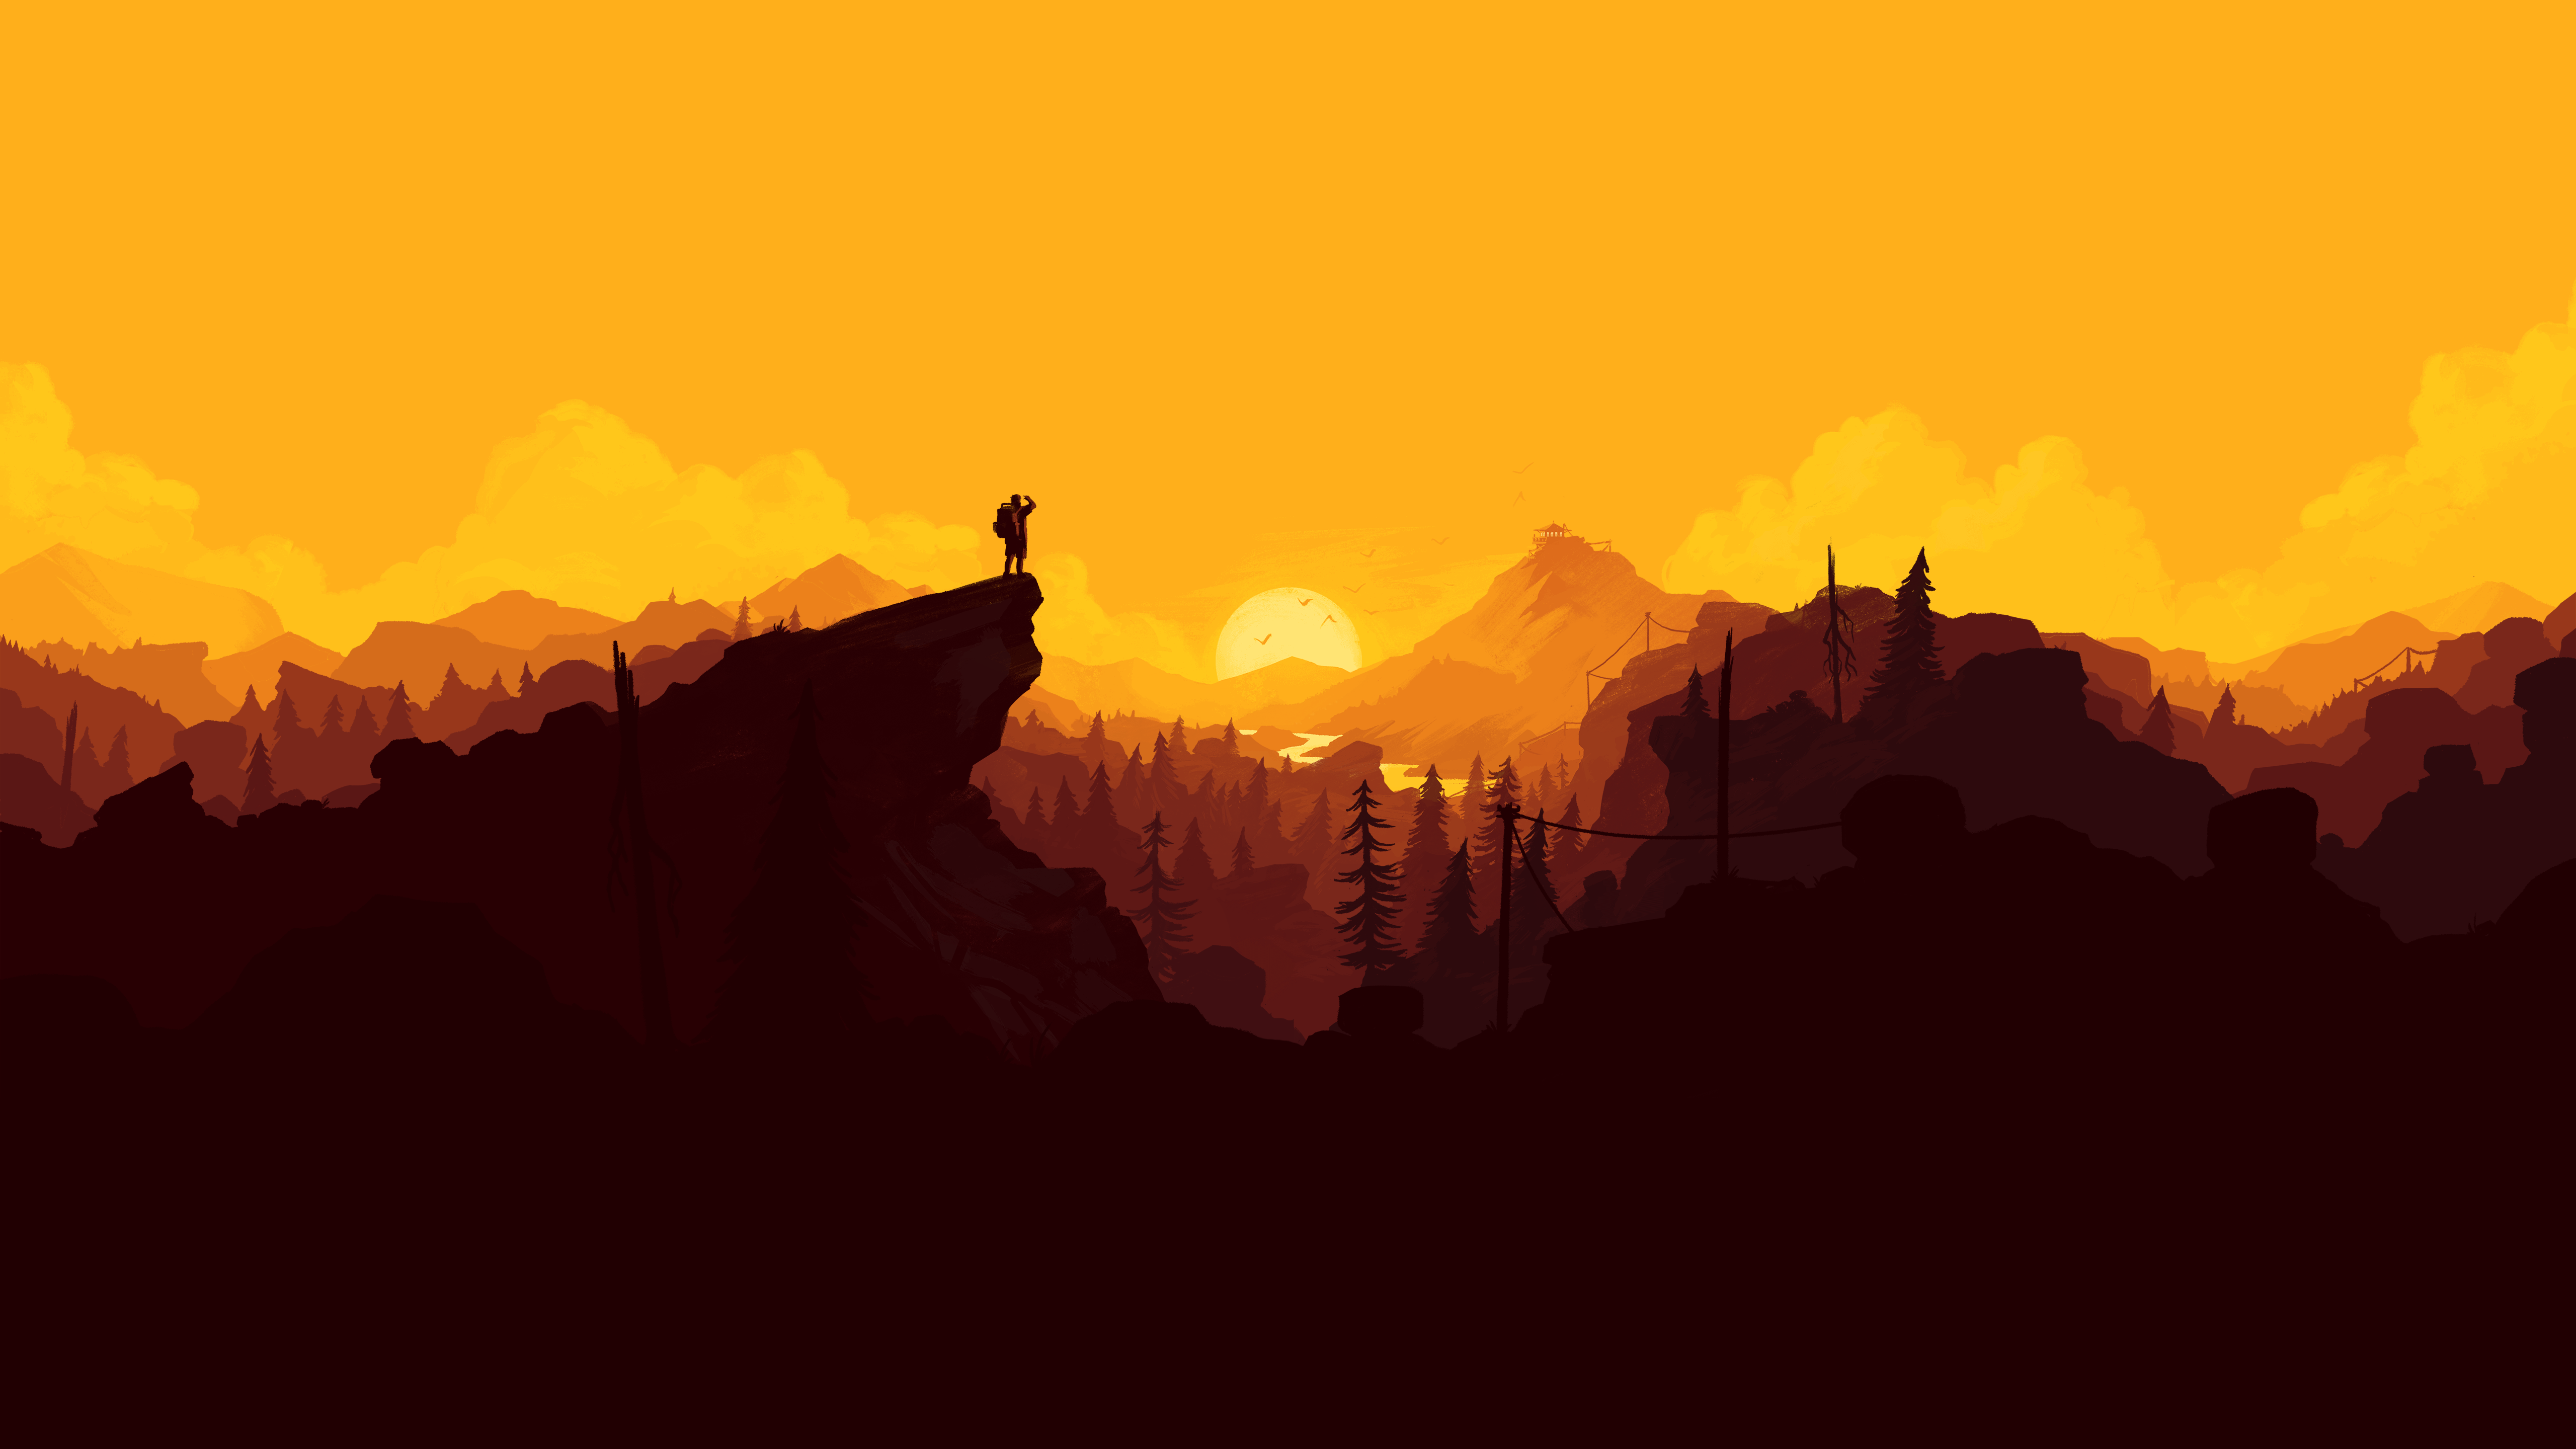 General 5120x2880 fantasy art Firewatch Olly Moss looking into the distance video game art video games